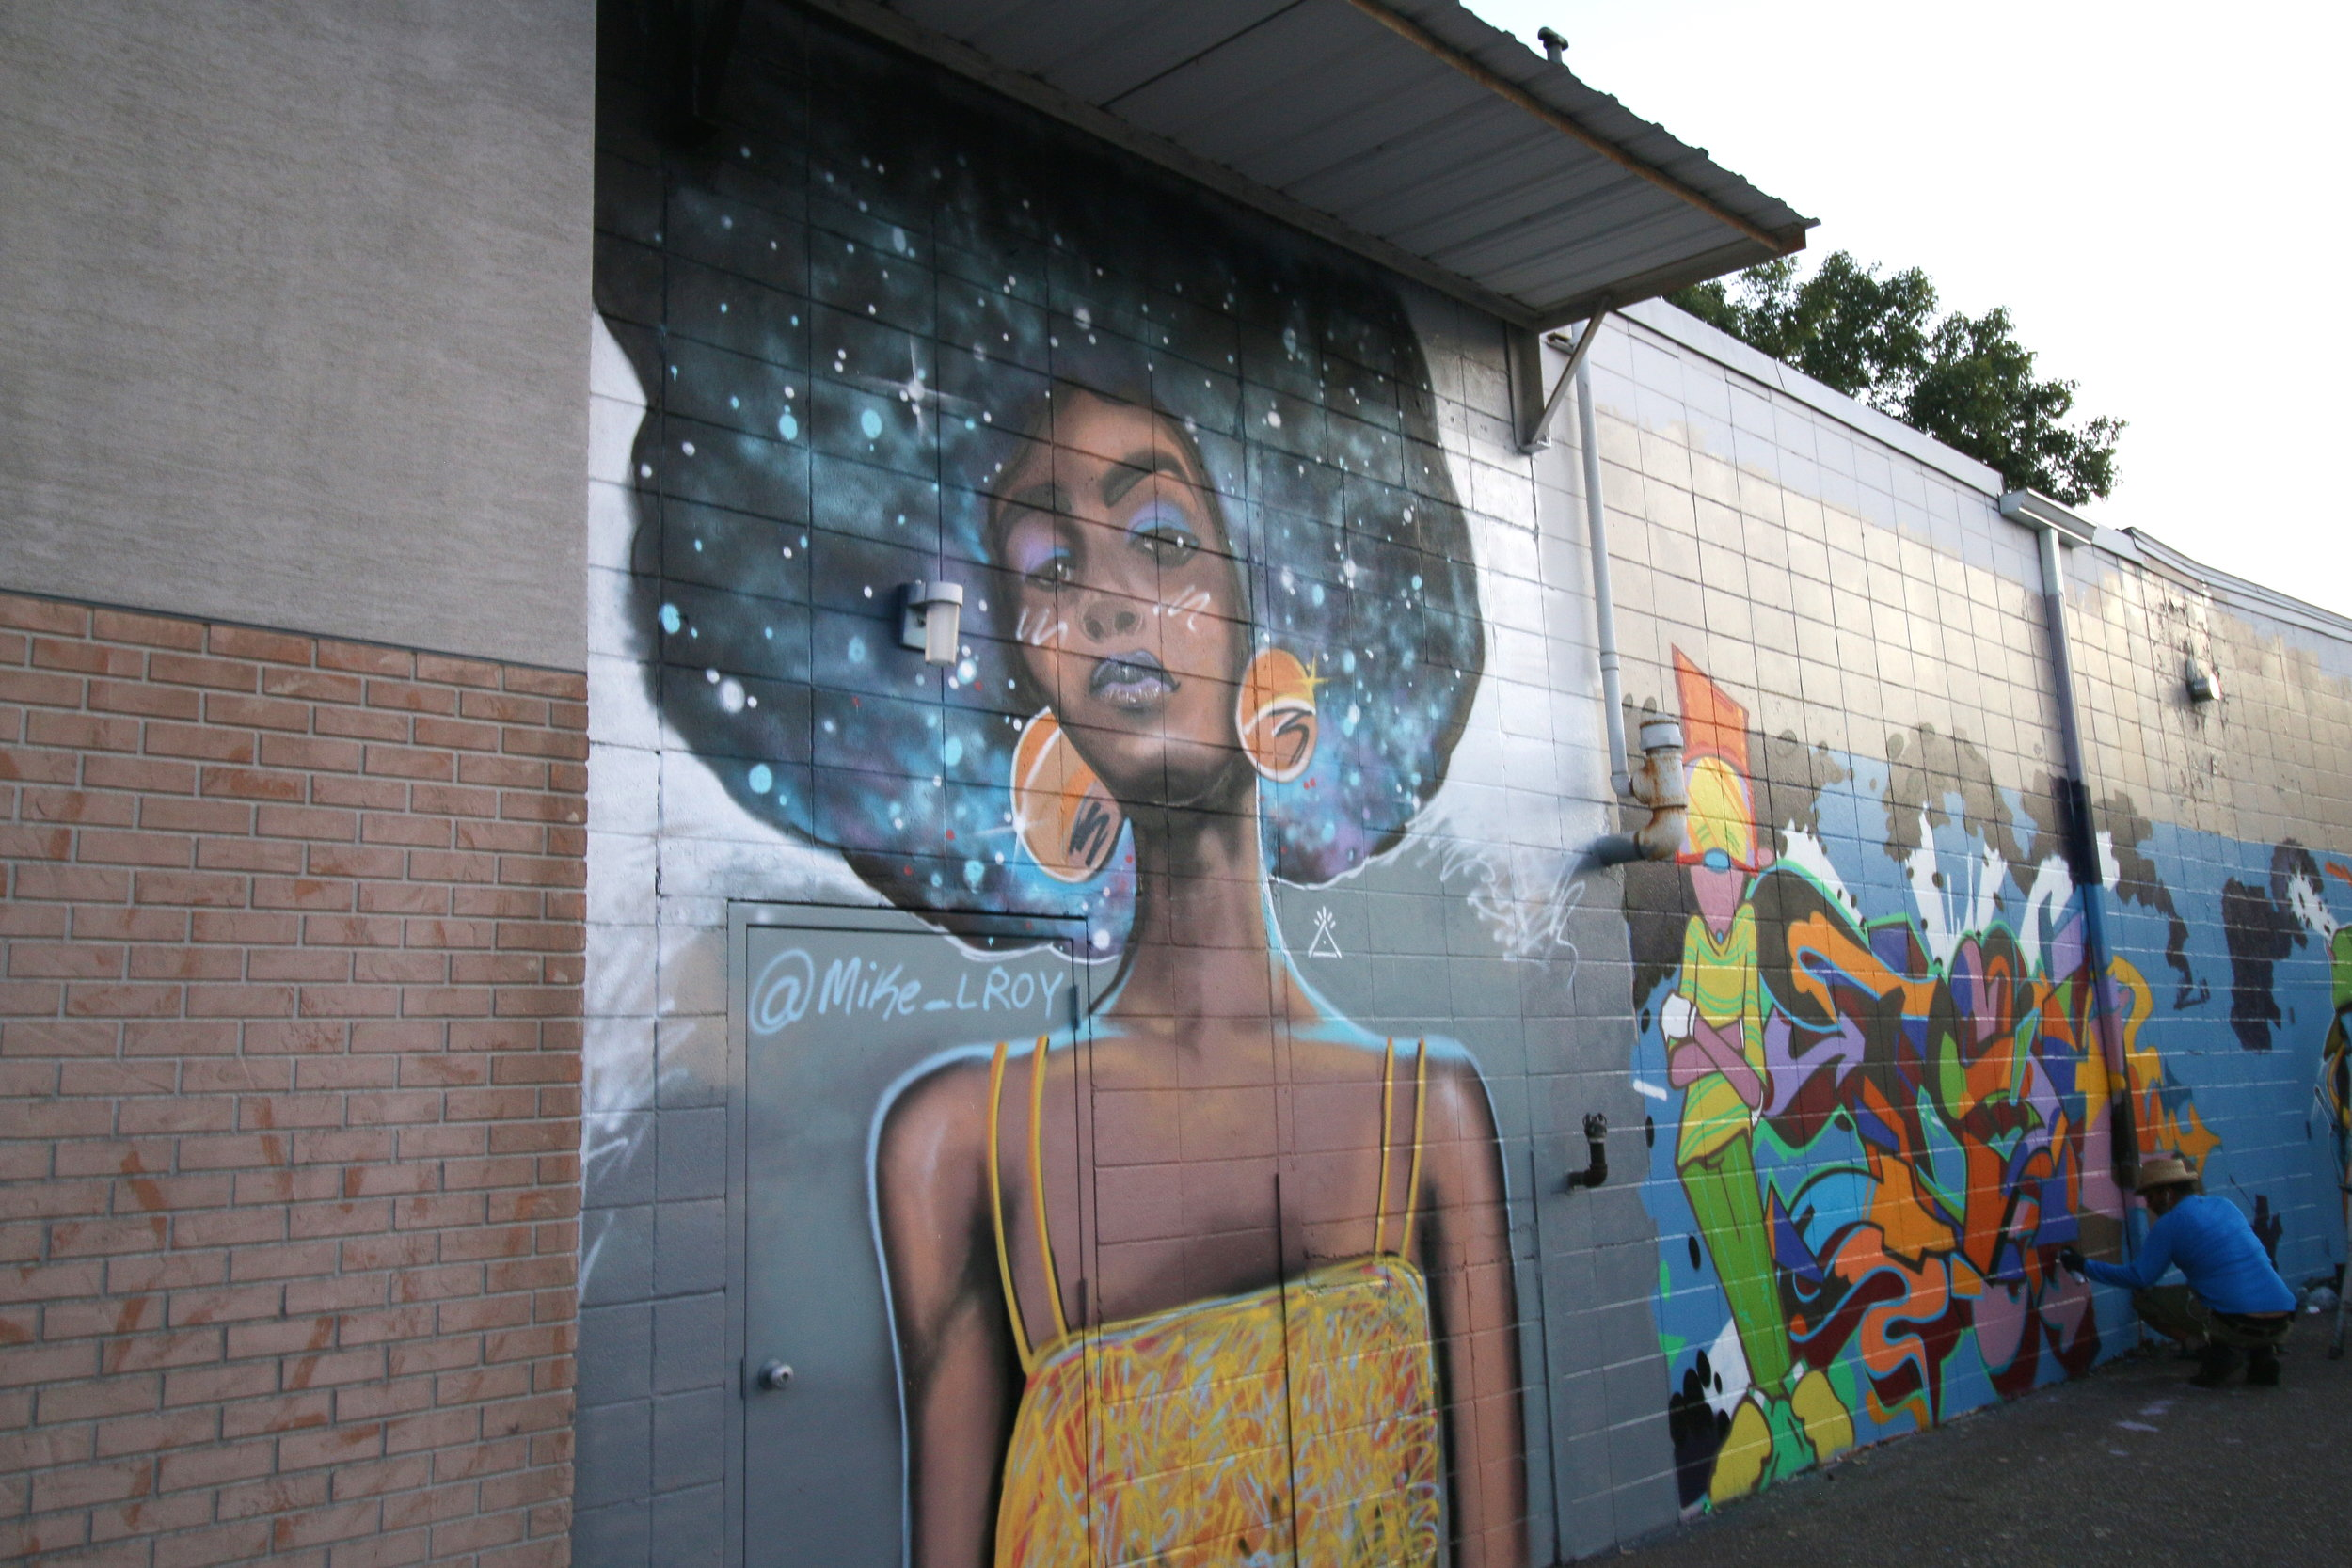 Mike Lroy Intergalactic Space Afro Woman Mural Monona, WI.JPG